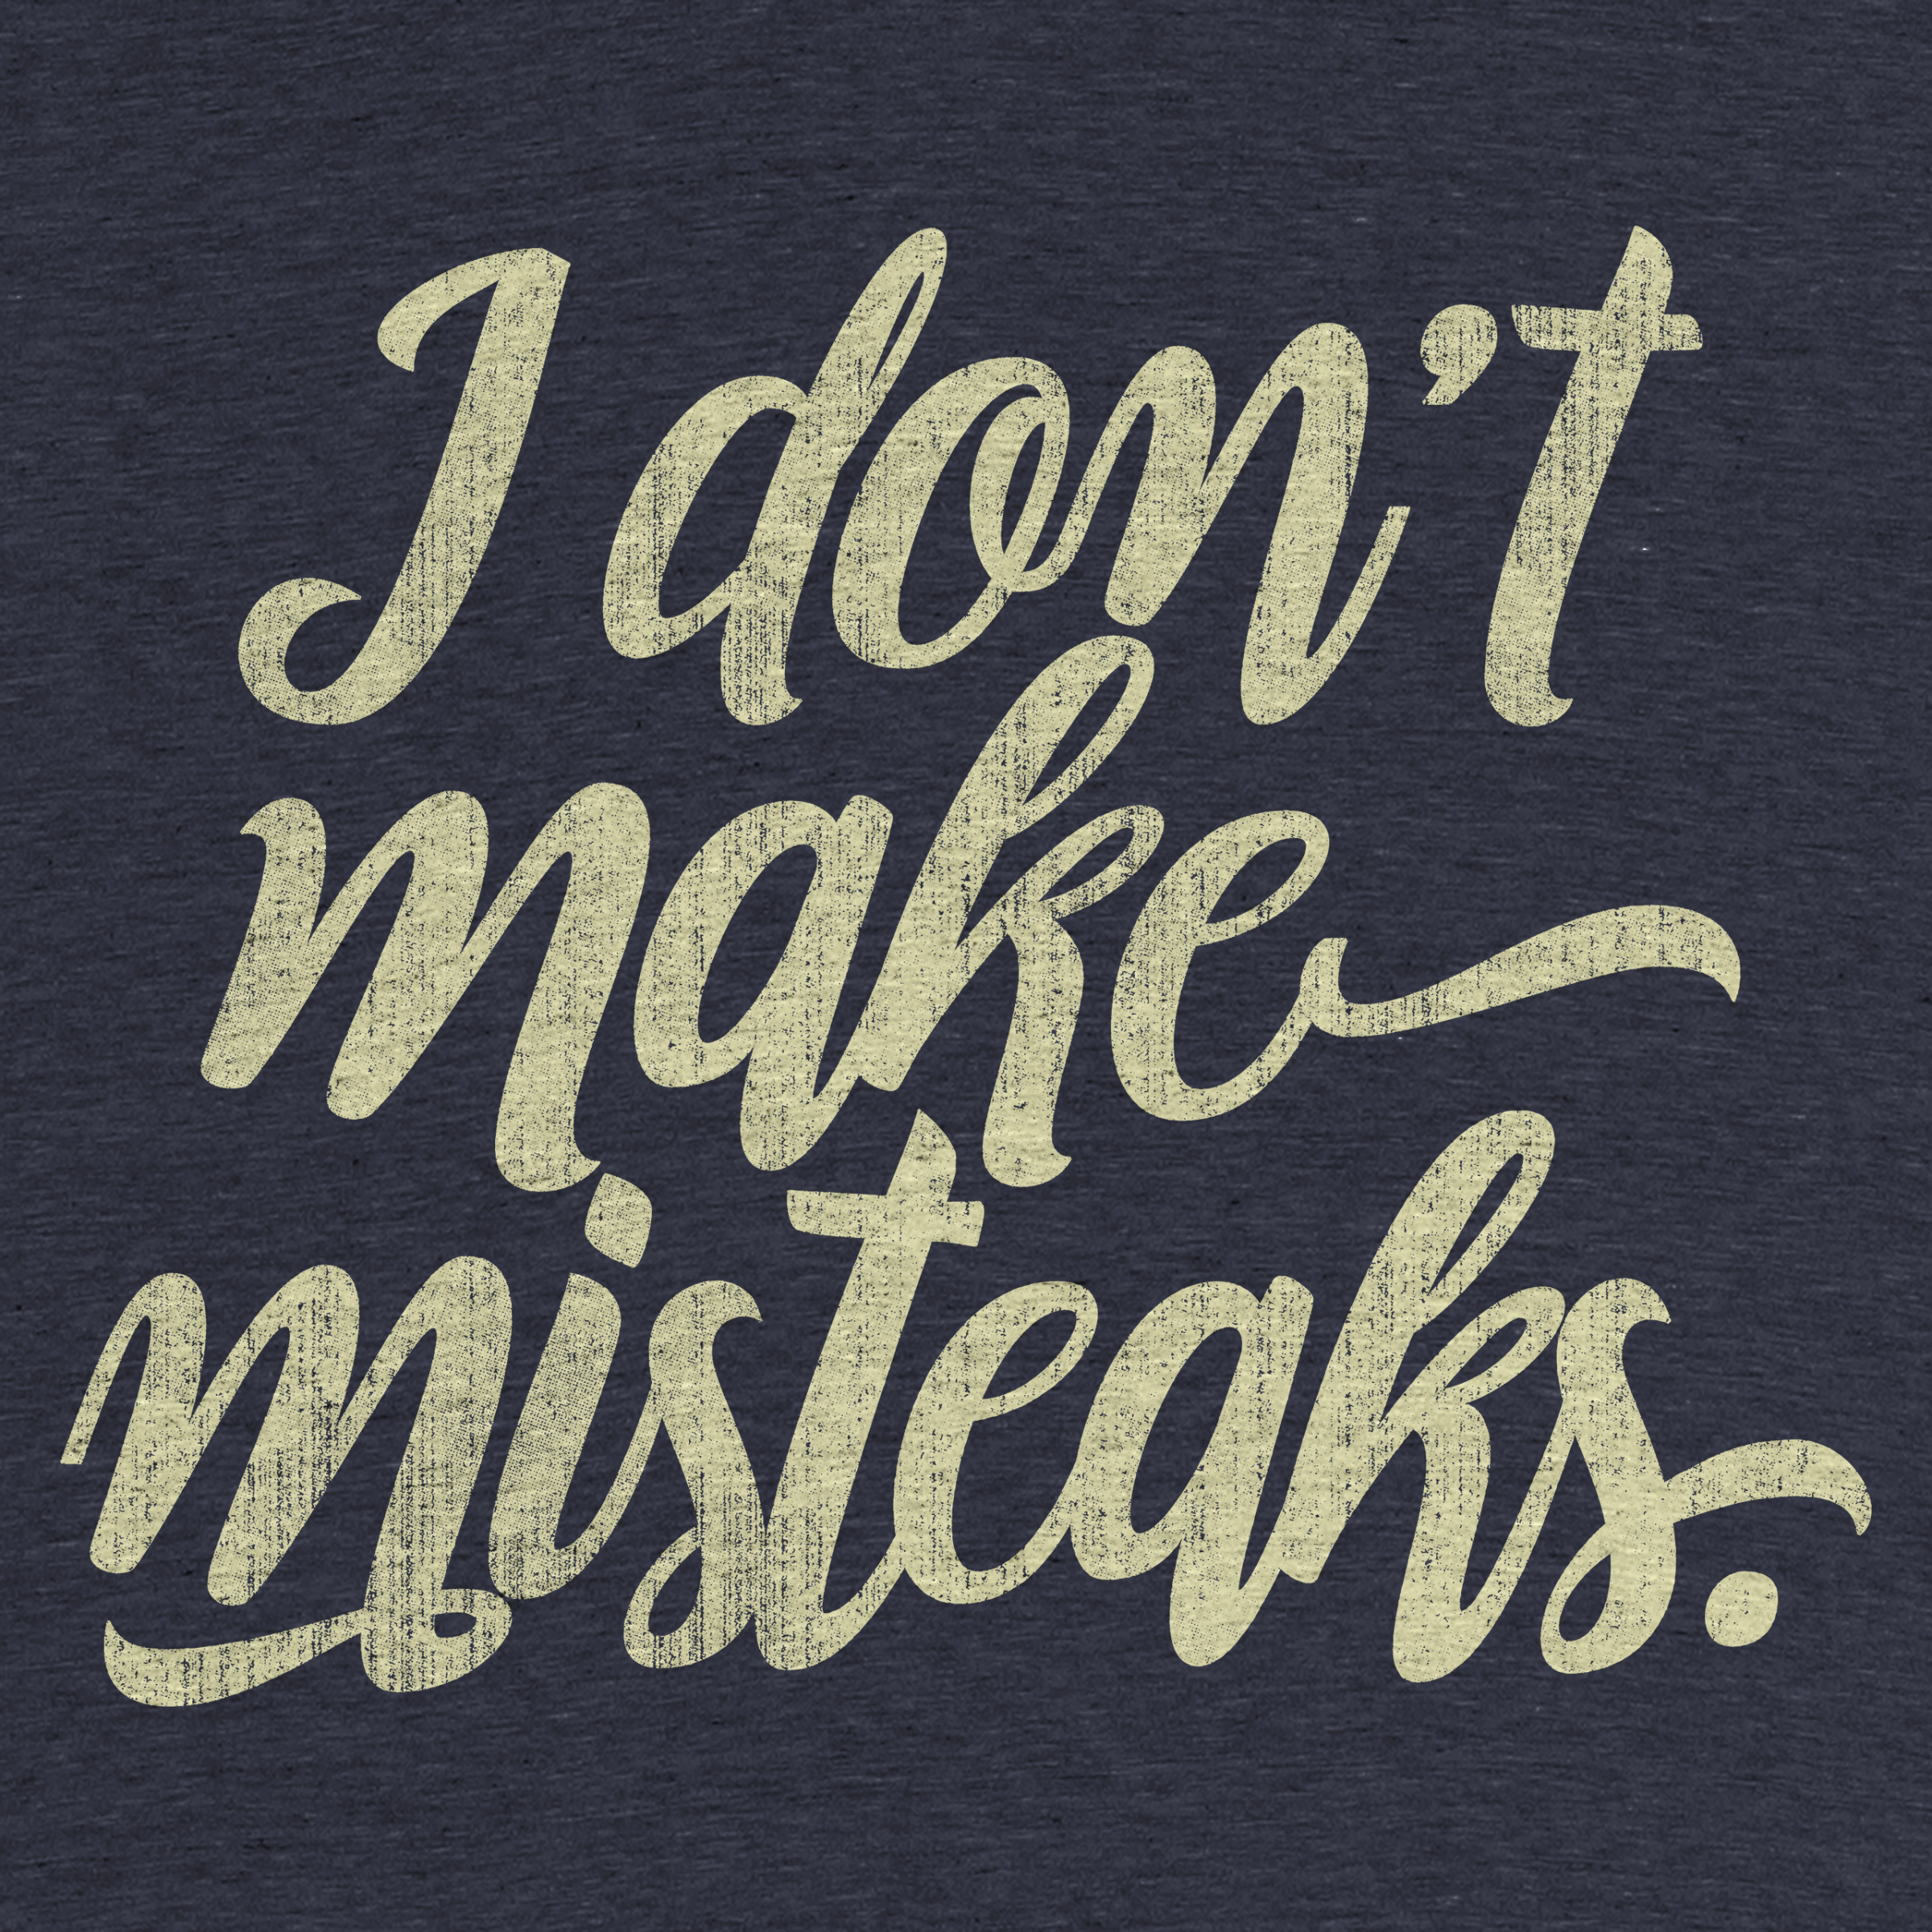 I Don't Make Misteaks.